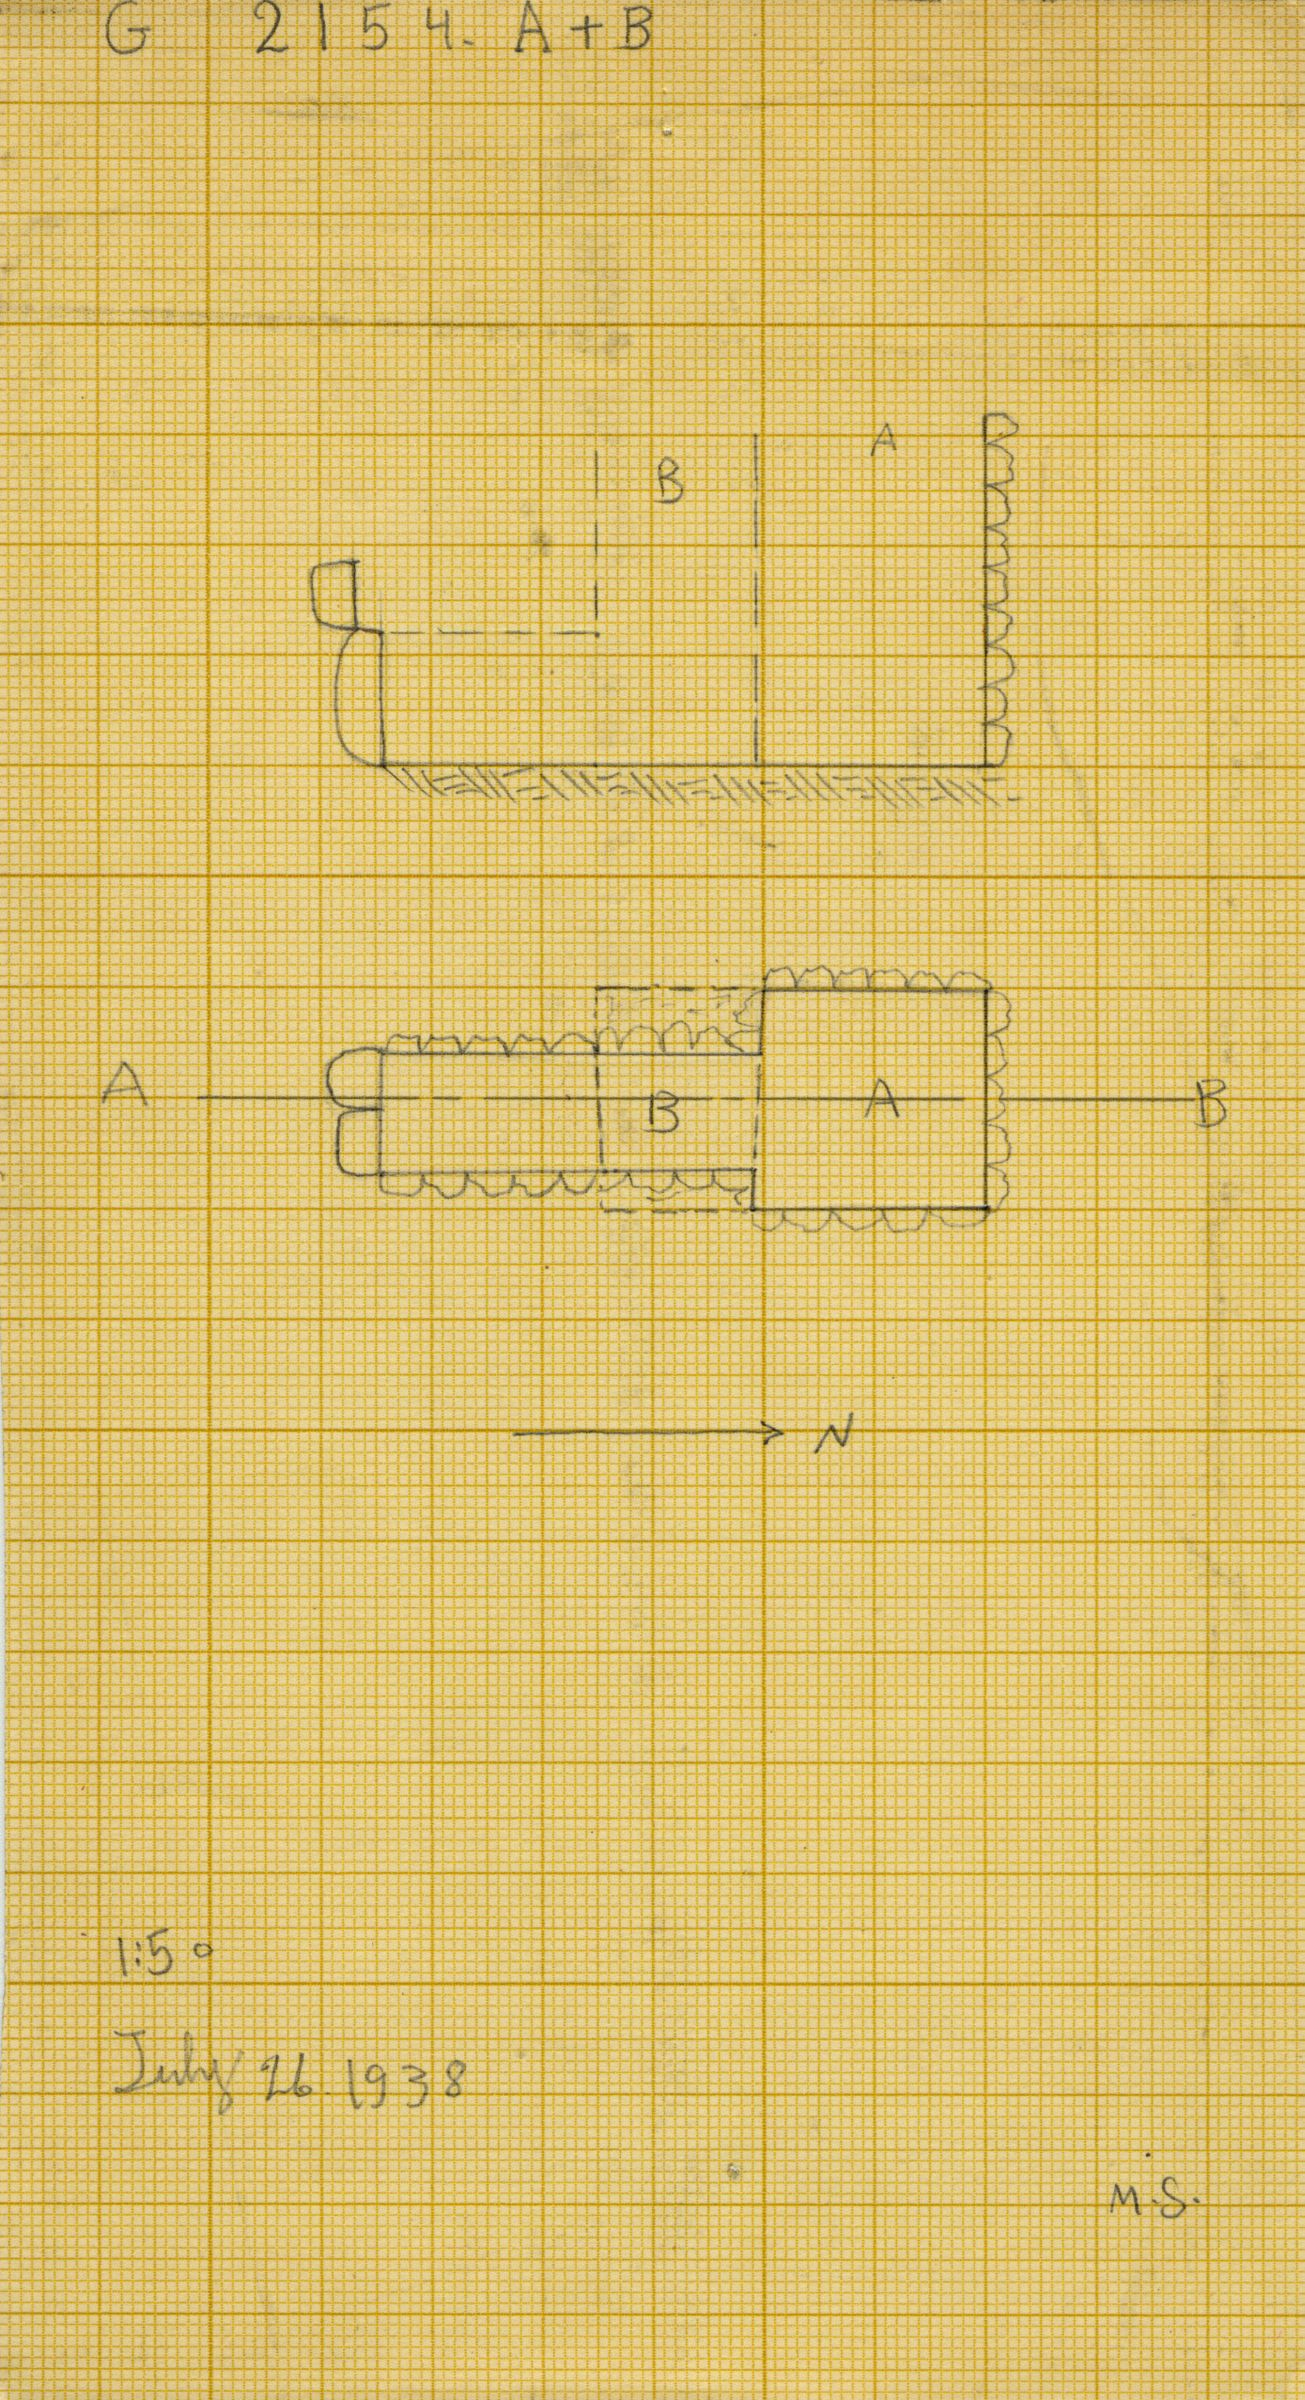 Maps and plans: G 2154, Shaft A and B